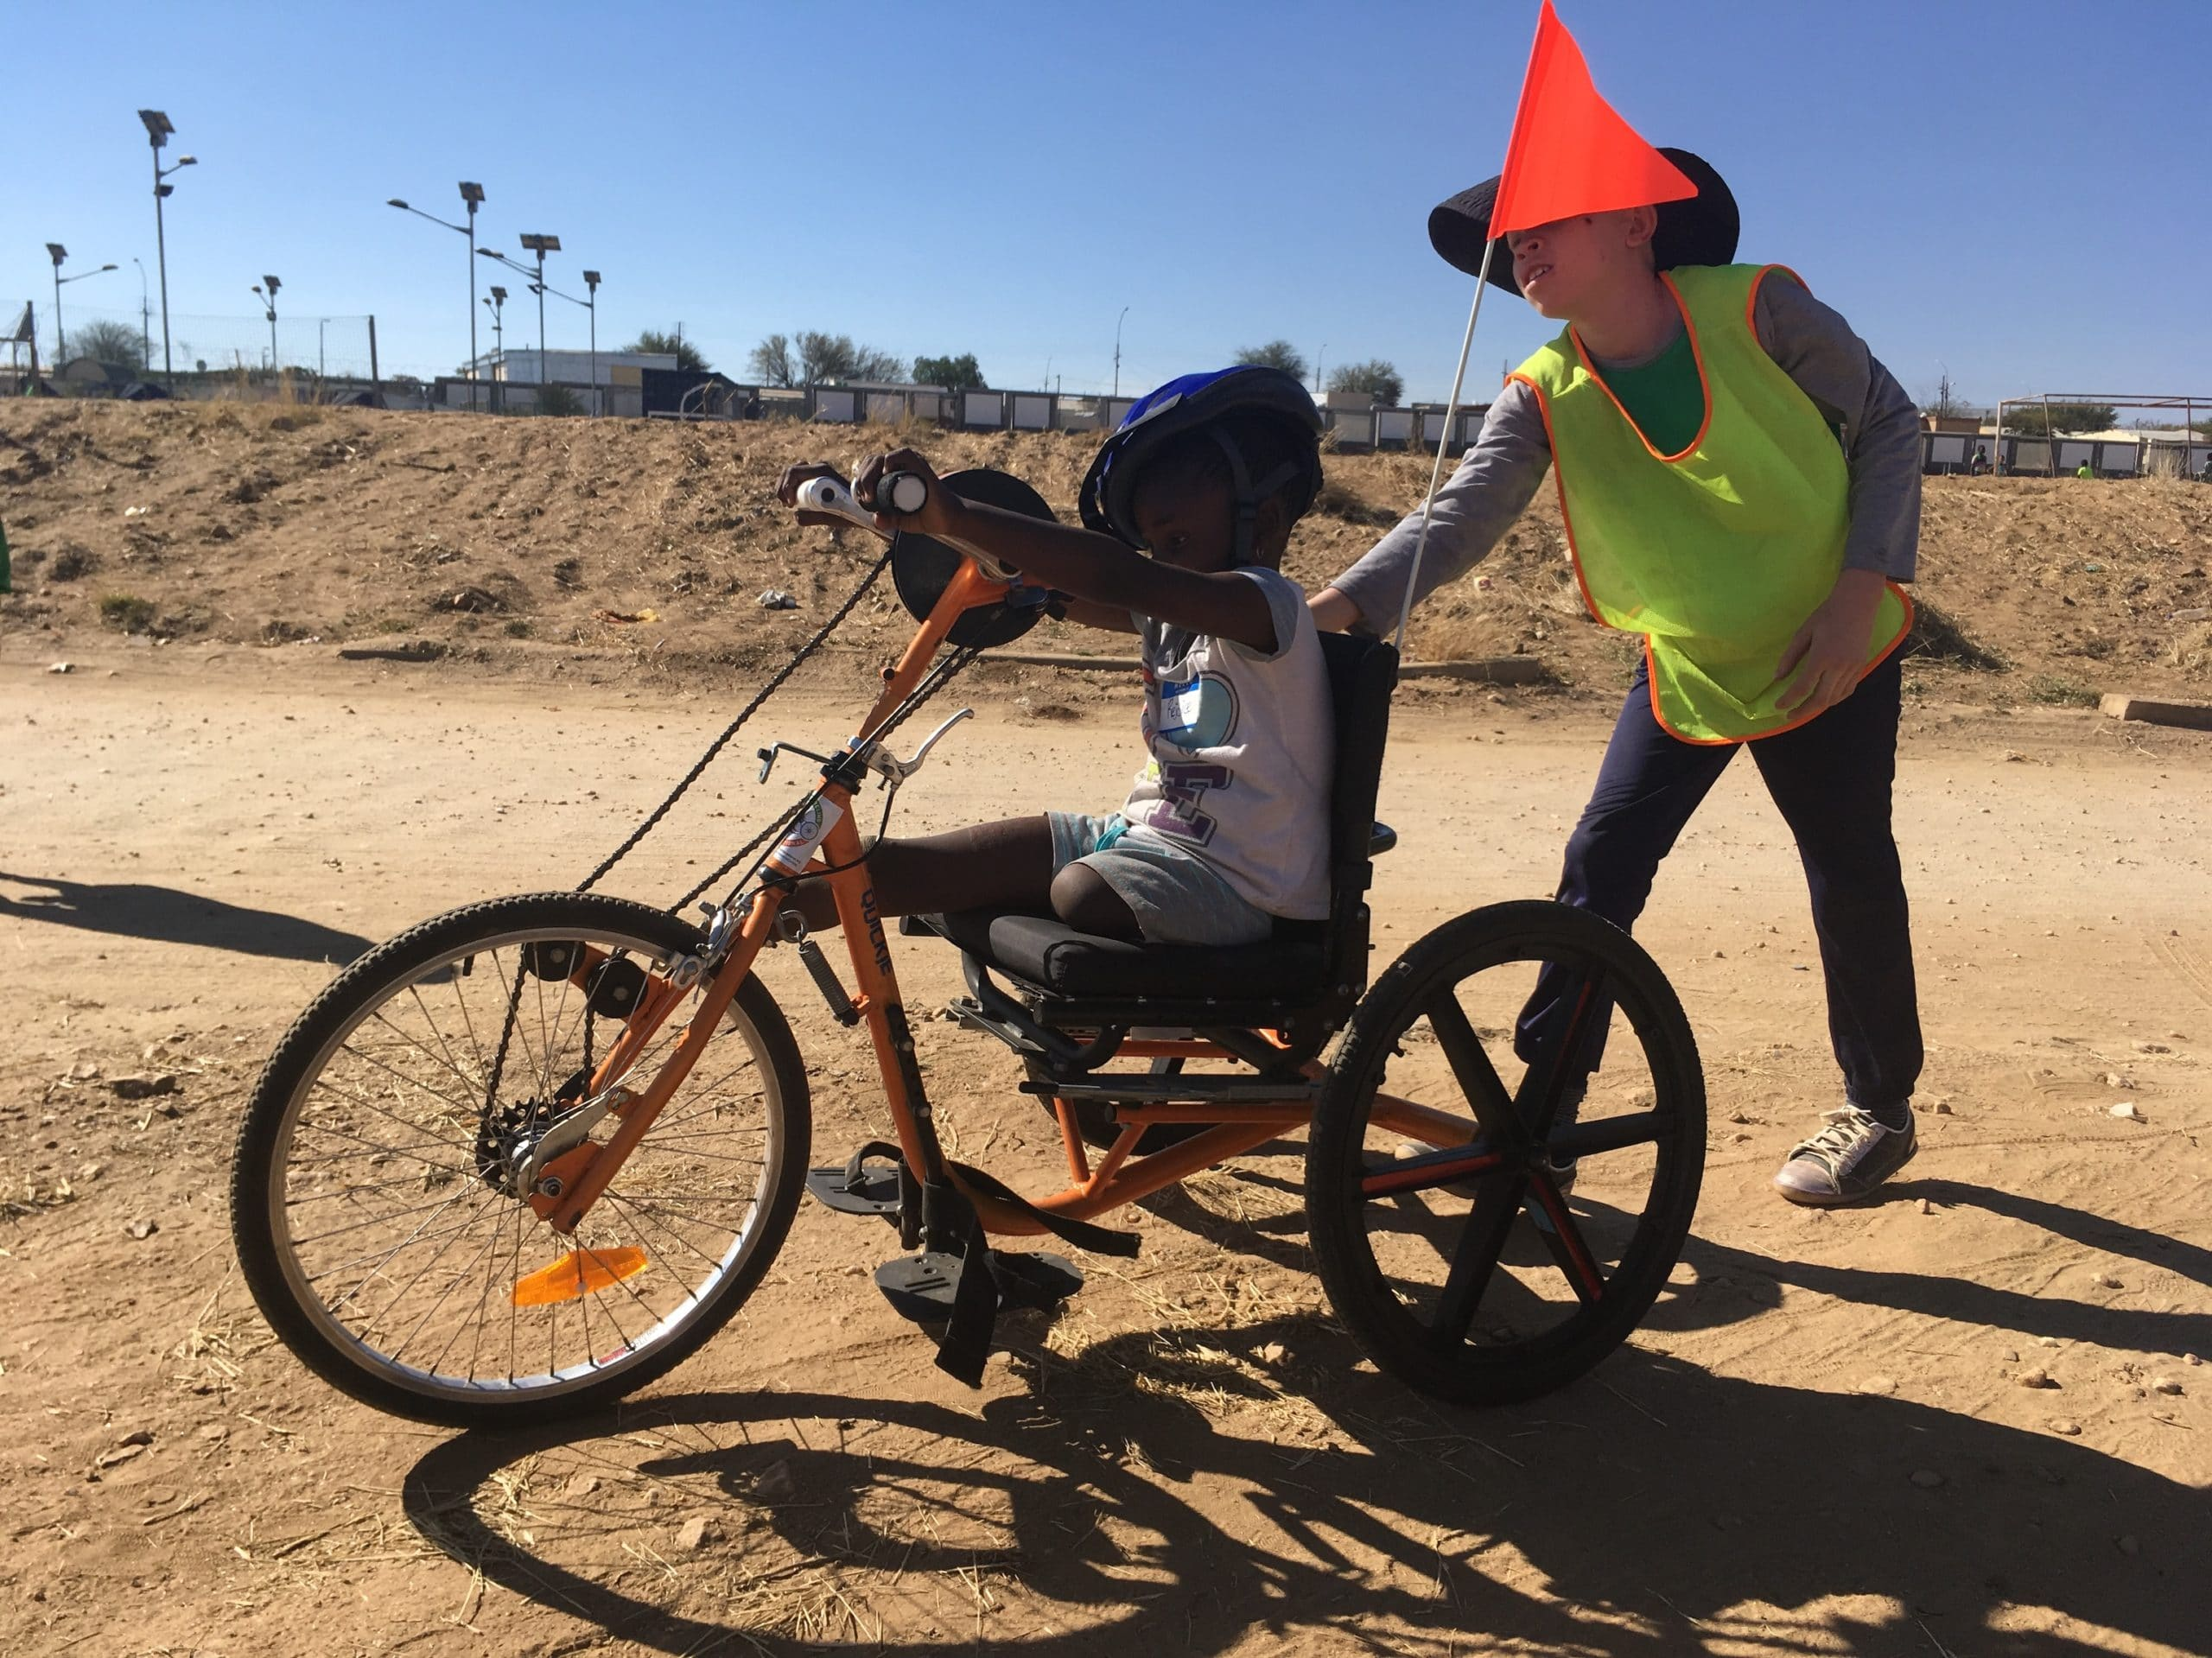 A leg-amputee child sits on an adaptive bike while another child stands behind with one hand on the bike as if he's pushing it.